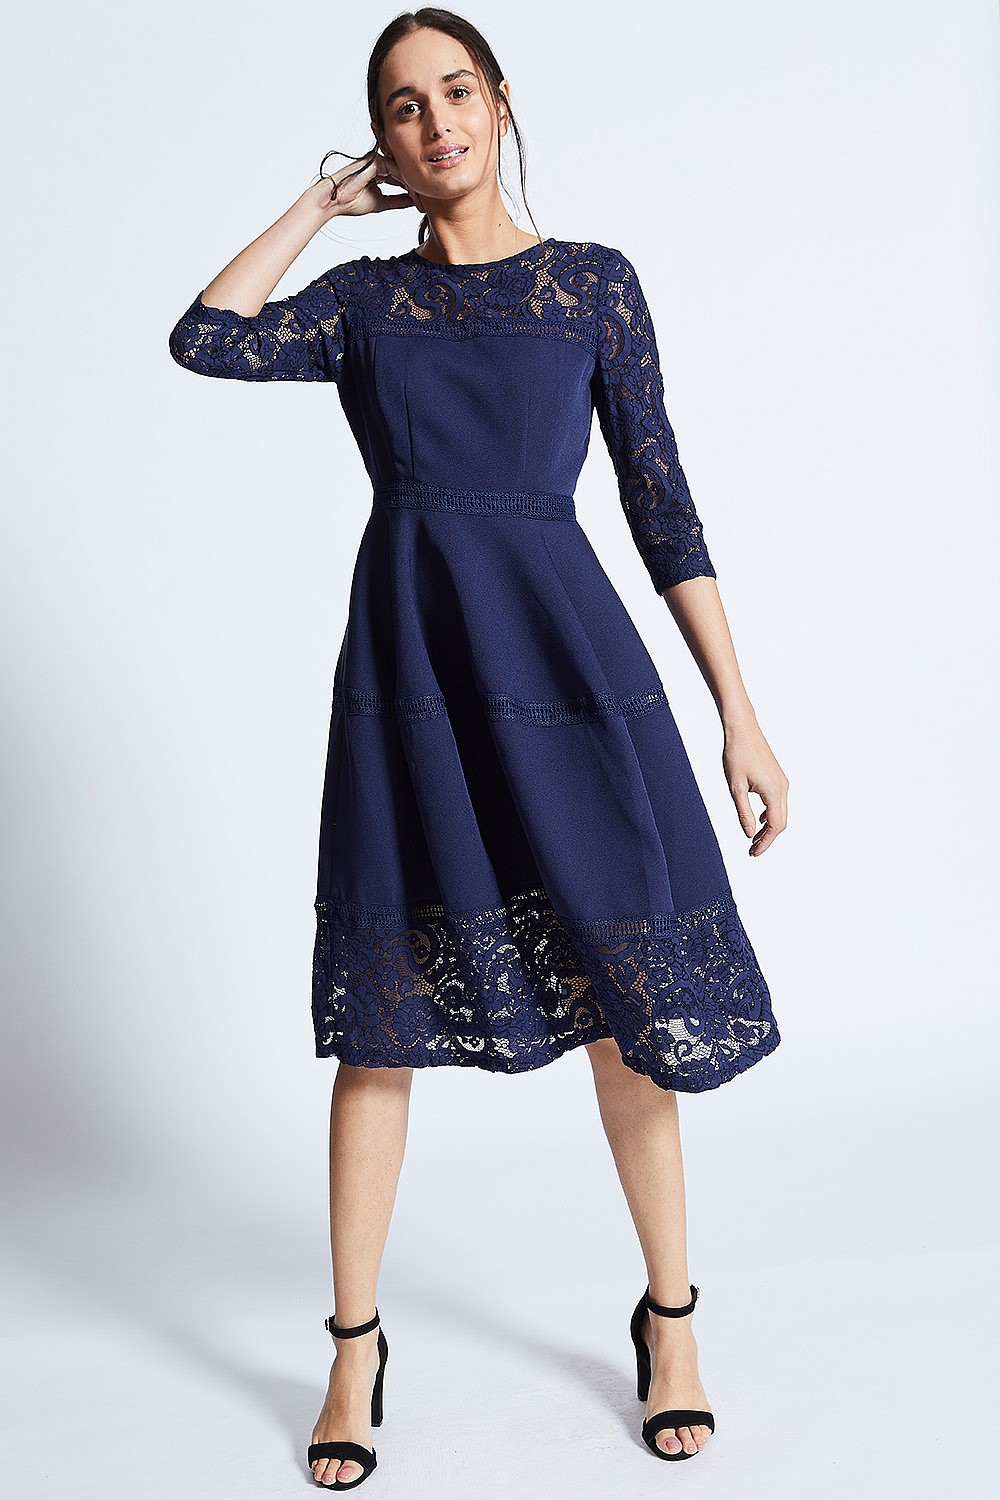 0830b2d90543 Navy Midi Dress with Lace Cut Sleeves